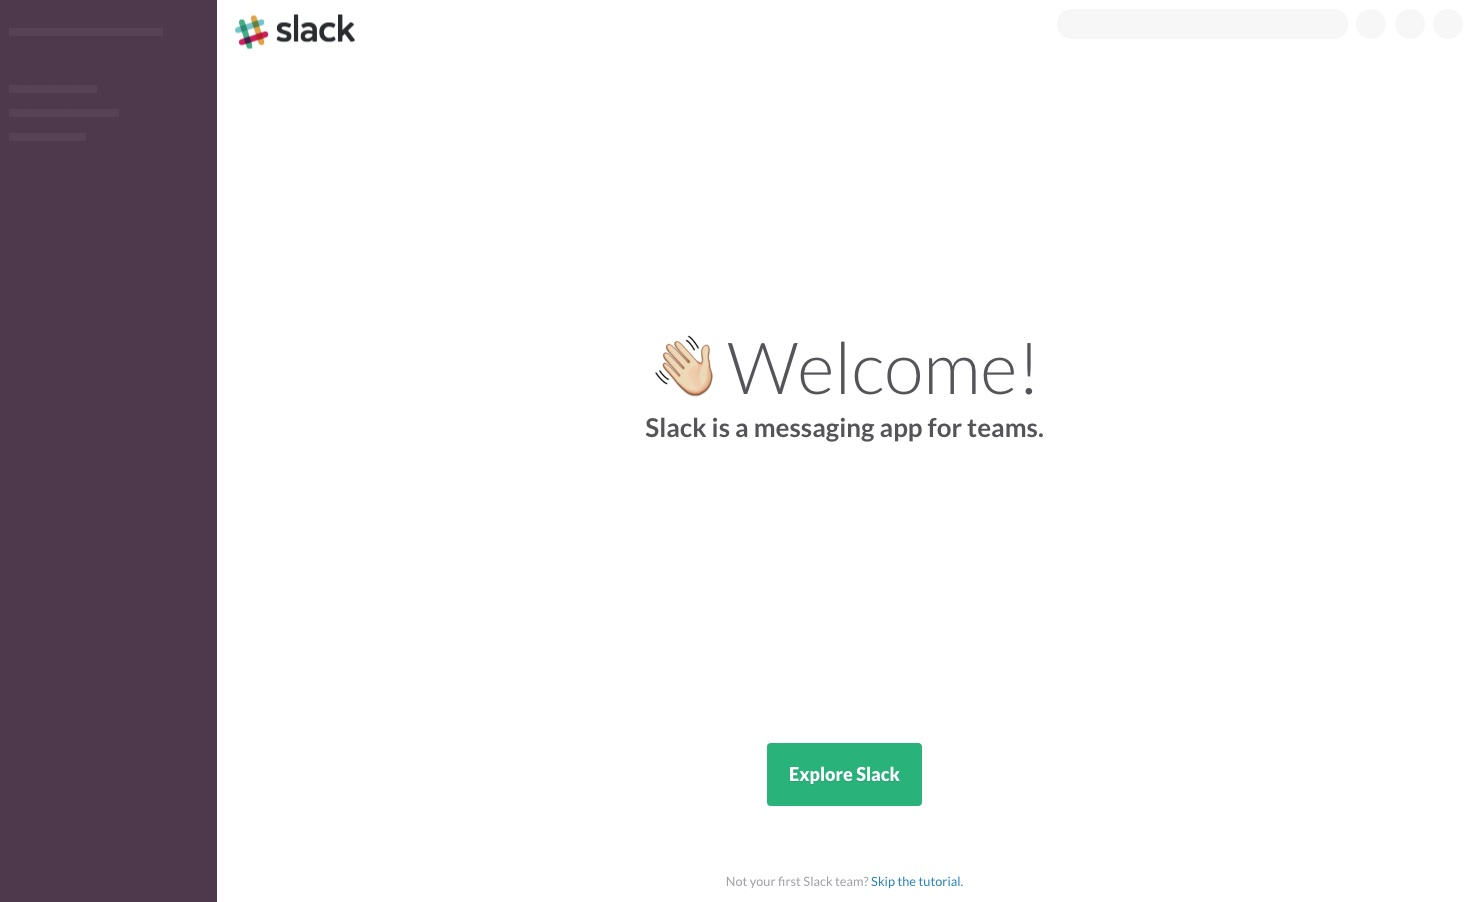 "This is a welcome message from slack. It shows a hand wave emoji and the words ""Welcome!"" Slack is a messaging app for teams. This is a full screen welcome message example."